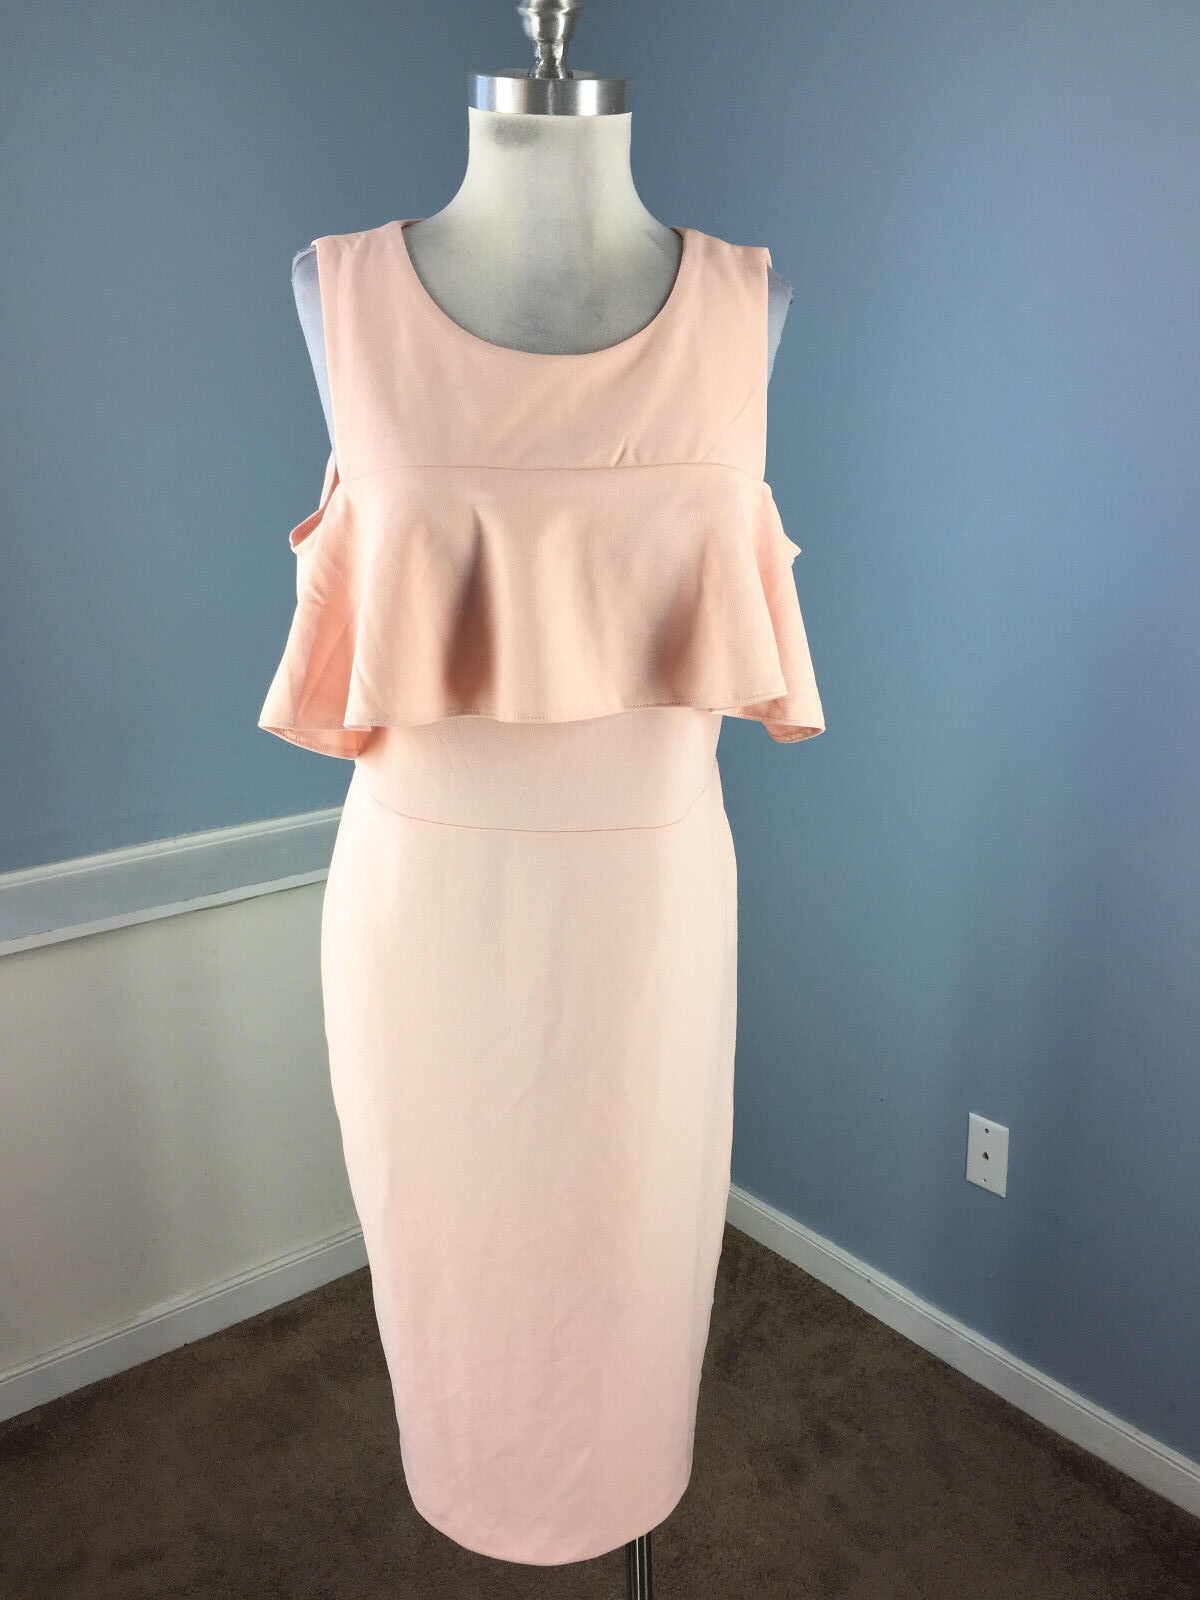 BEIGE ECI bluesh Pink Midi Cold Shoulder Ruffle dress Sheath L 10 12 Career Party